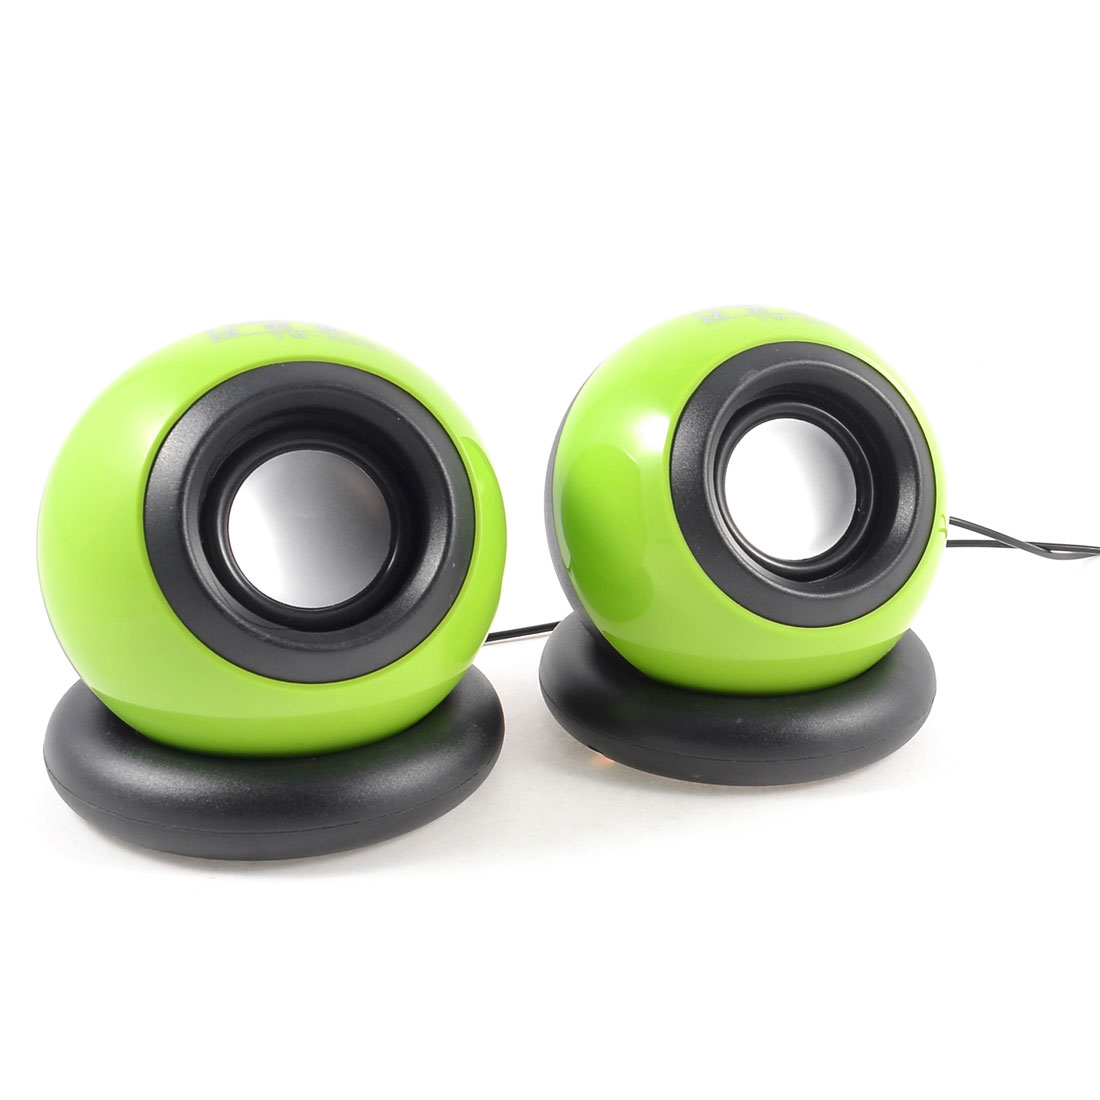 2 Pcs Green Black Computer USB 2.0 3.5mm Plug Ball Shape Mini Sound Box Speaker